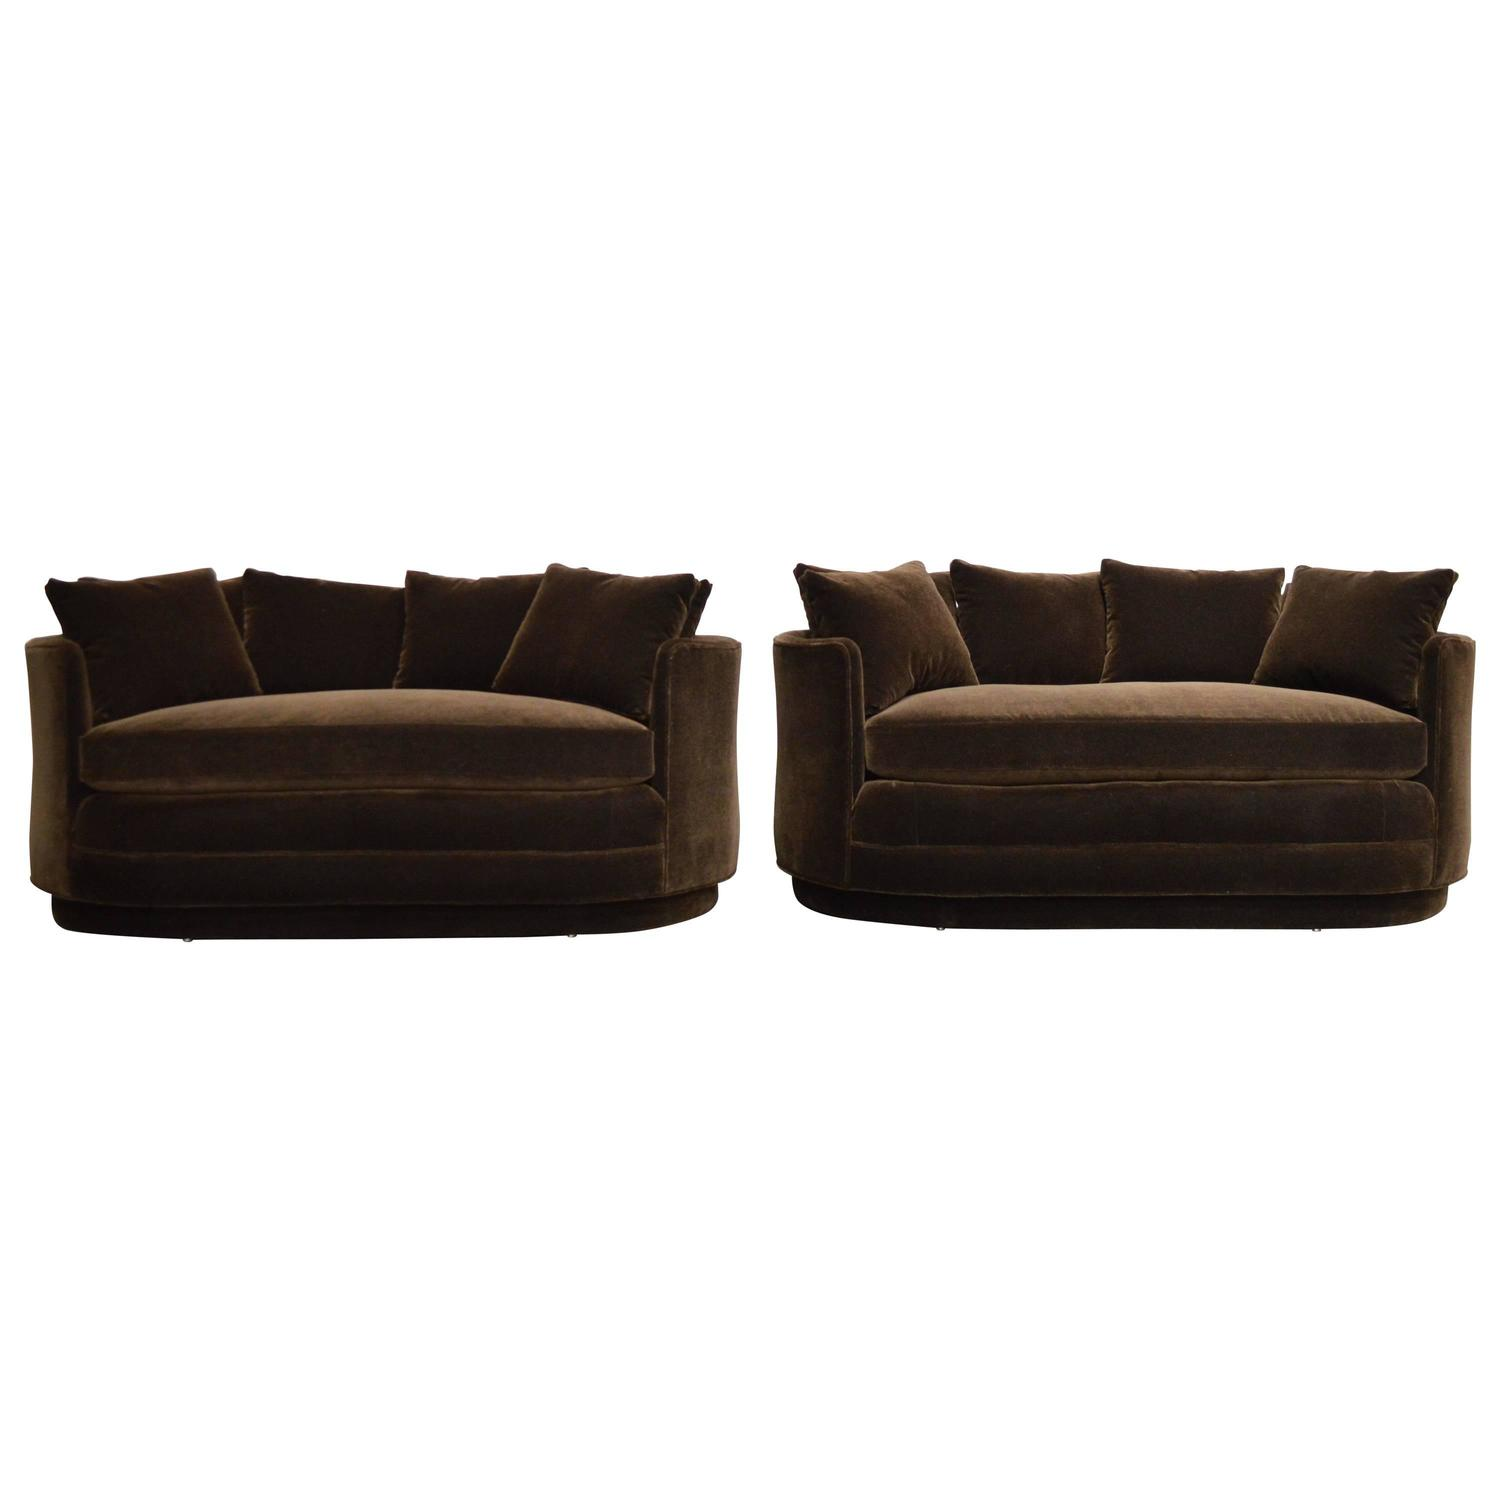 pair of vintage curved loveseat sofas in chocolate brown mohair  - pair of vintage curved loveseat sofas in chocolate brown mohair for sale atstdibs